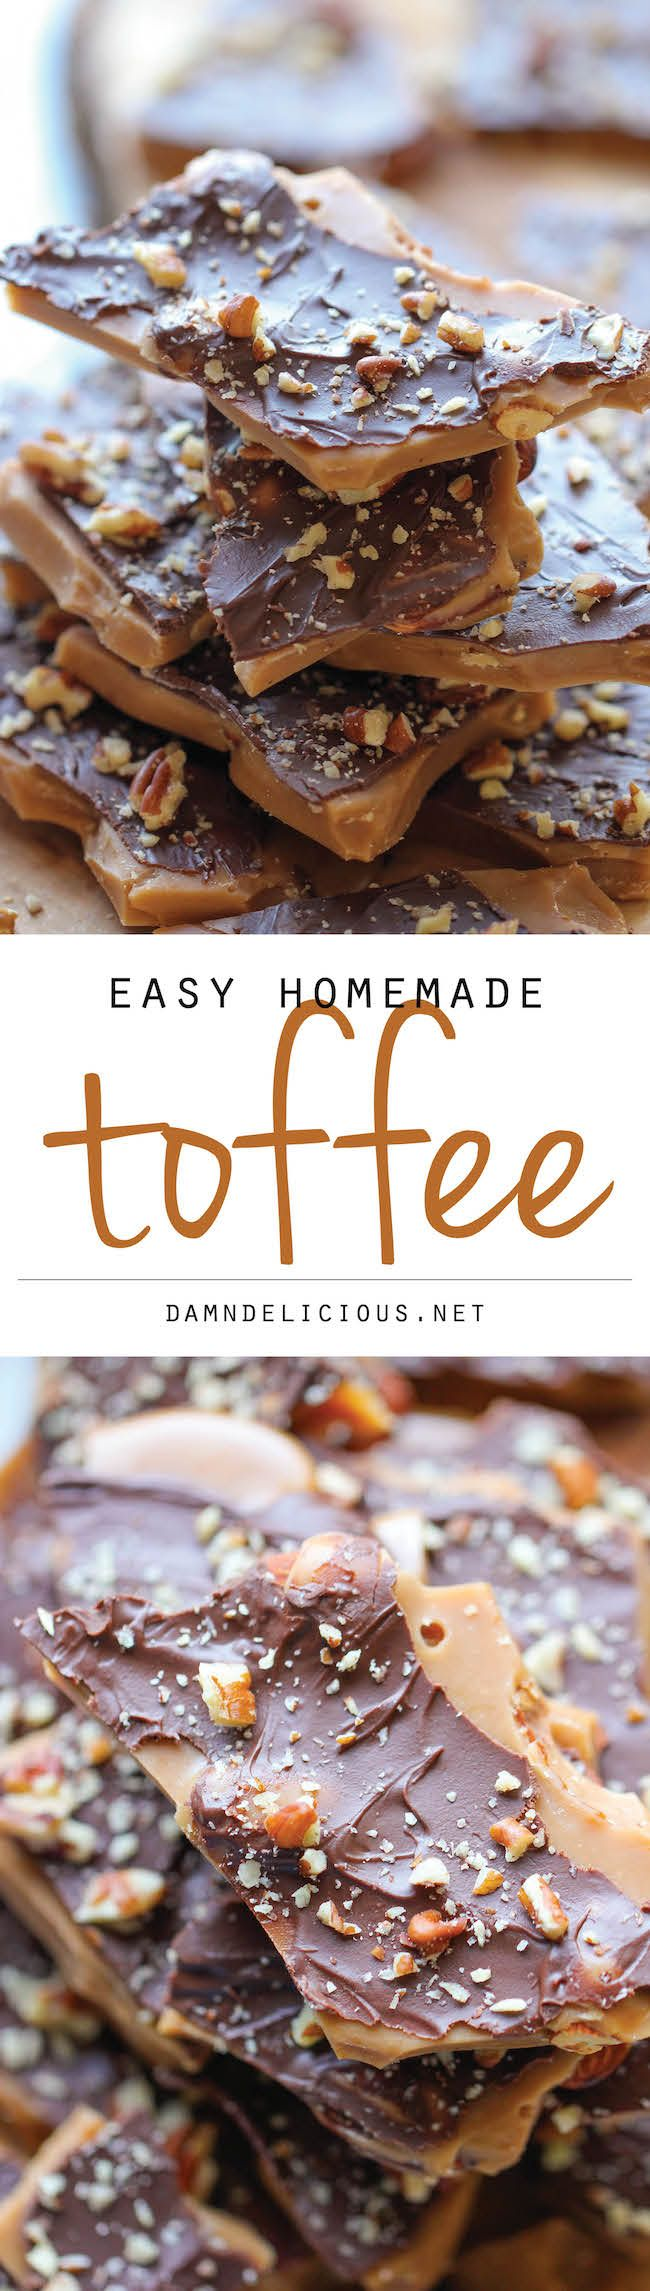 Easy Homemade Toffee - An unbelievably easy, no-fuss, homemade toffee recipe. So…